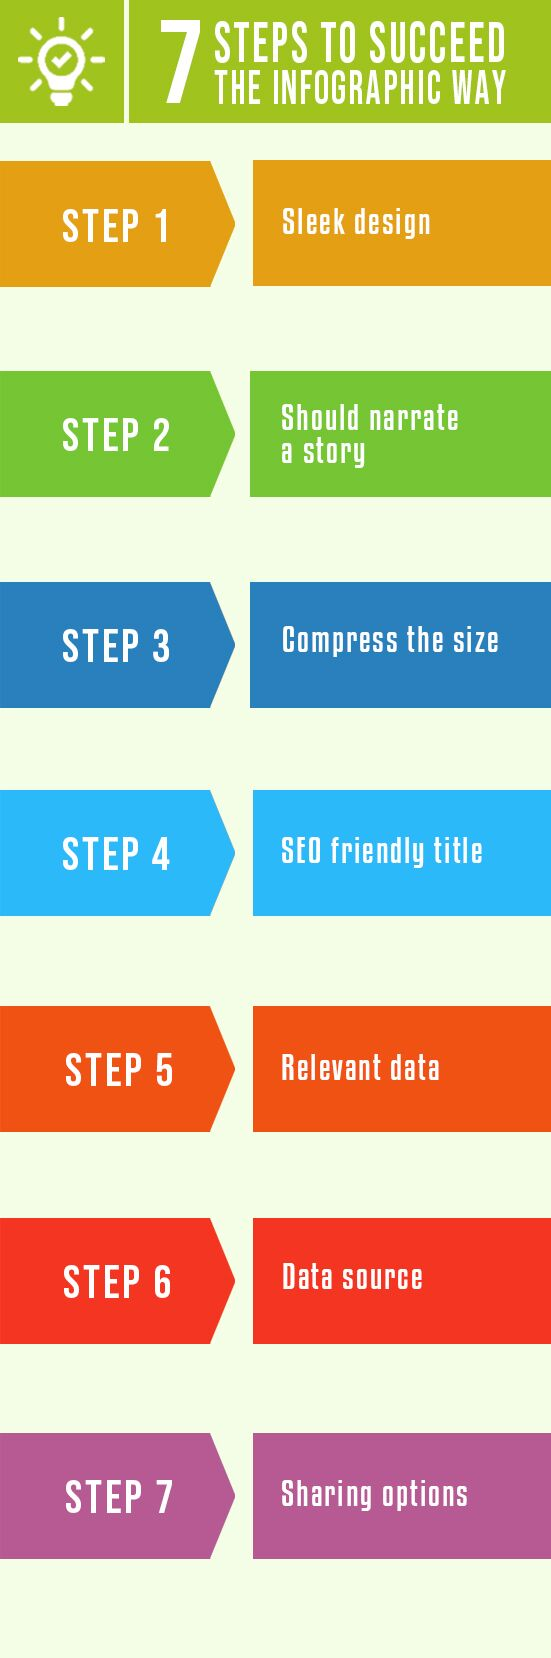 7 Steps to Succeed The Infographic Way - Infographic